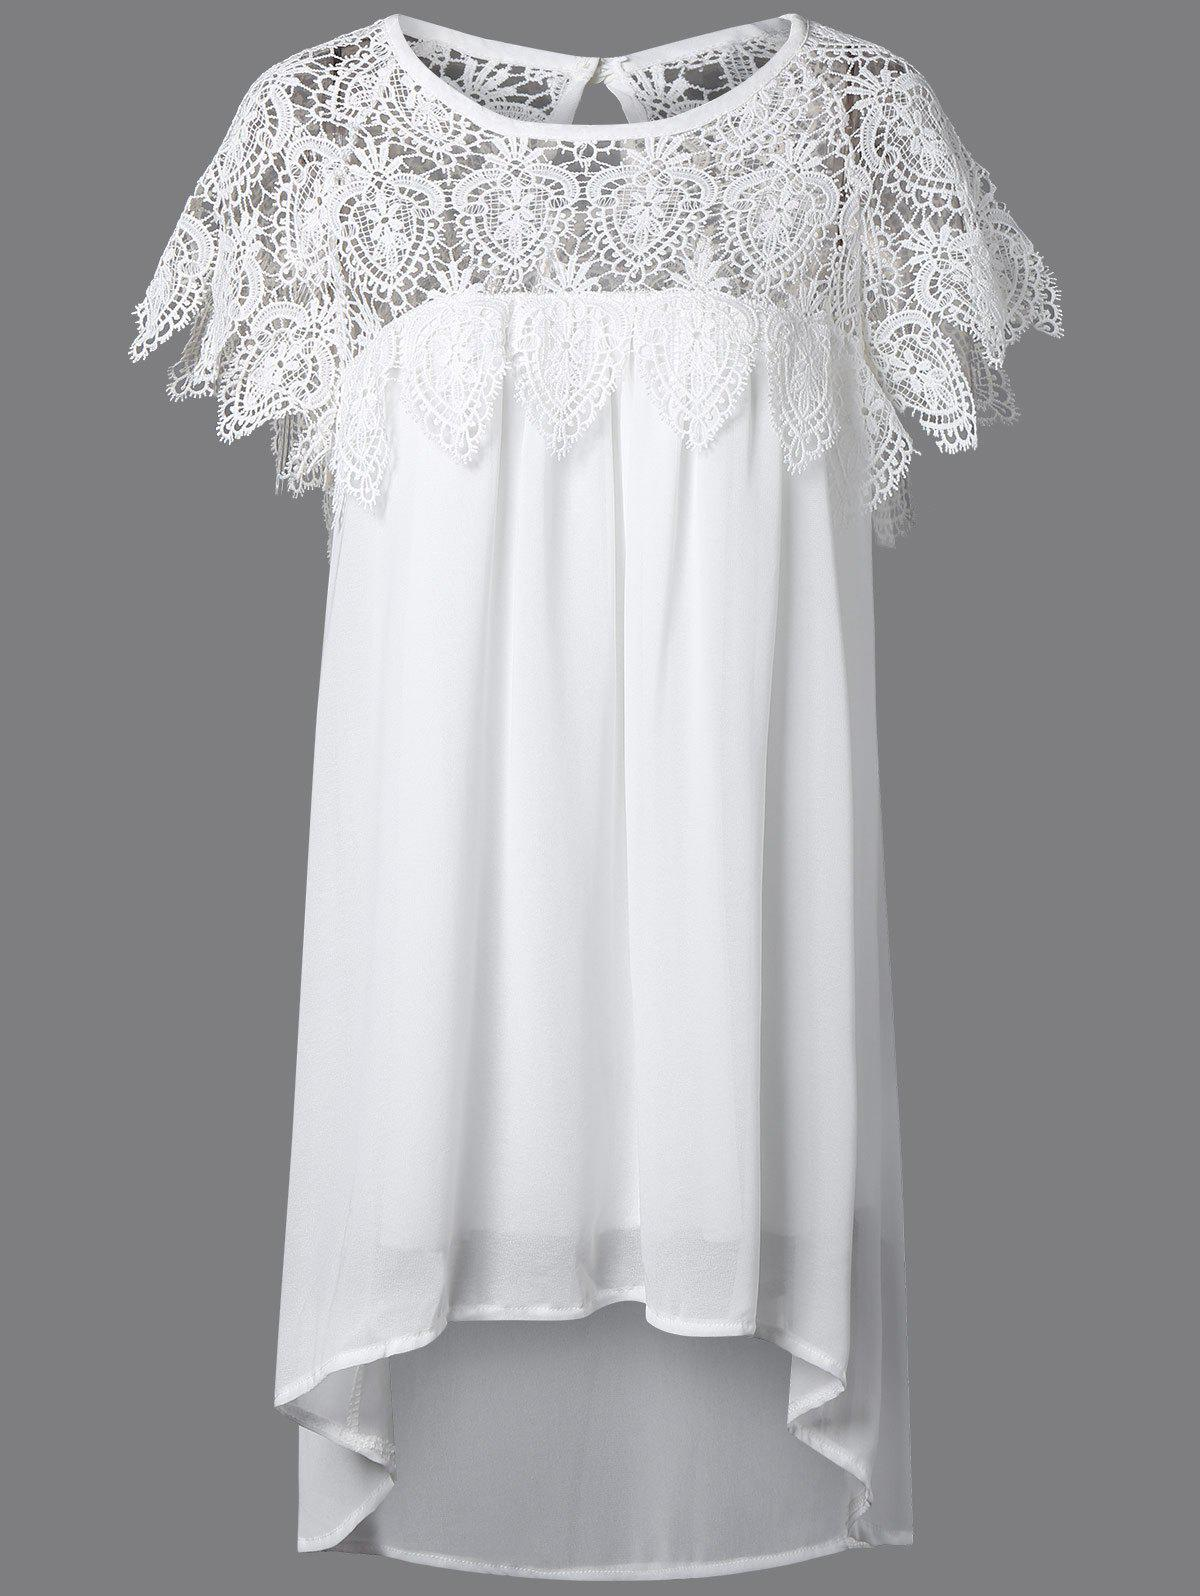 Lace Panel Chiffon Tunic Shift Summer DressWOMEN<br><br>Size: 2XL; Color: WHITE; Style: Casual; Material: Lace,Polyester; Fabric Type: Chiffon; Silhouette: Asymmetrical; Dresses Length: Mini; Neckline: Round Collar; Sleeve Length: Short Sleeves; Pattern Type: Patchwork; With Belt: No; Season: Summer; Weight: 0.2440kg; Package Contents: 1 x Dress;